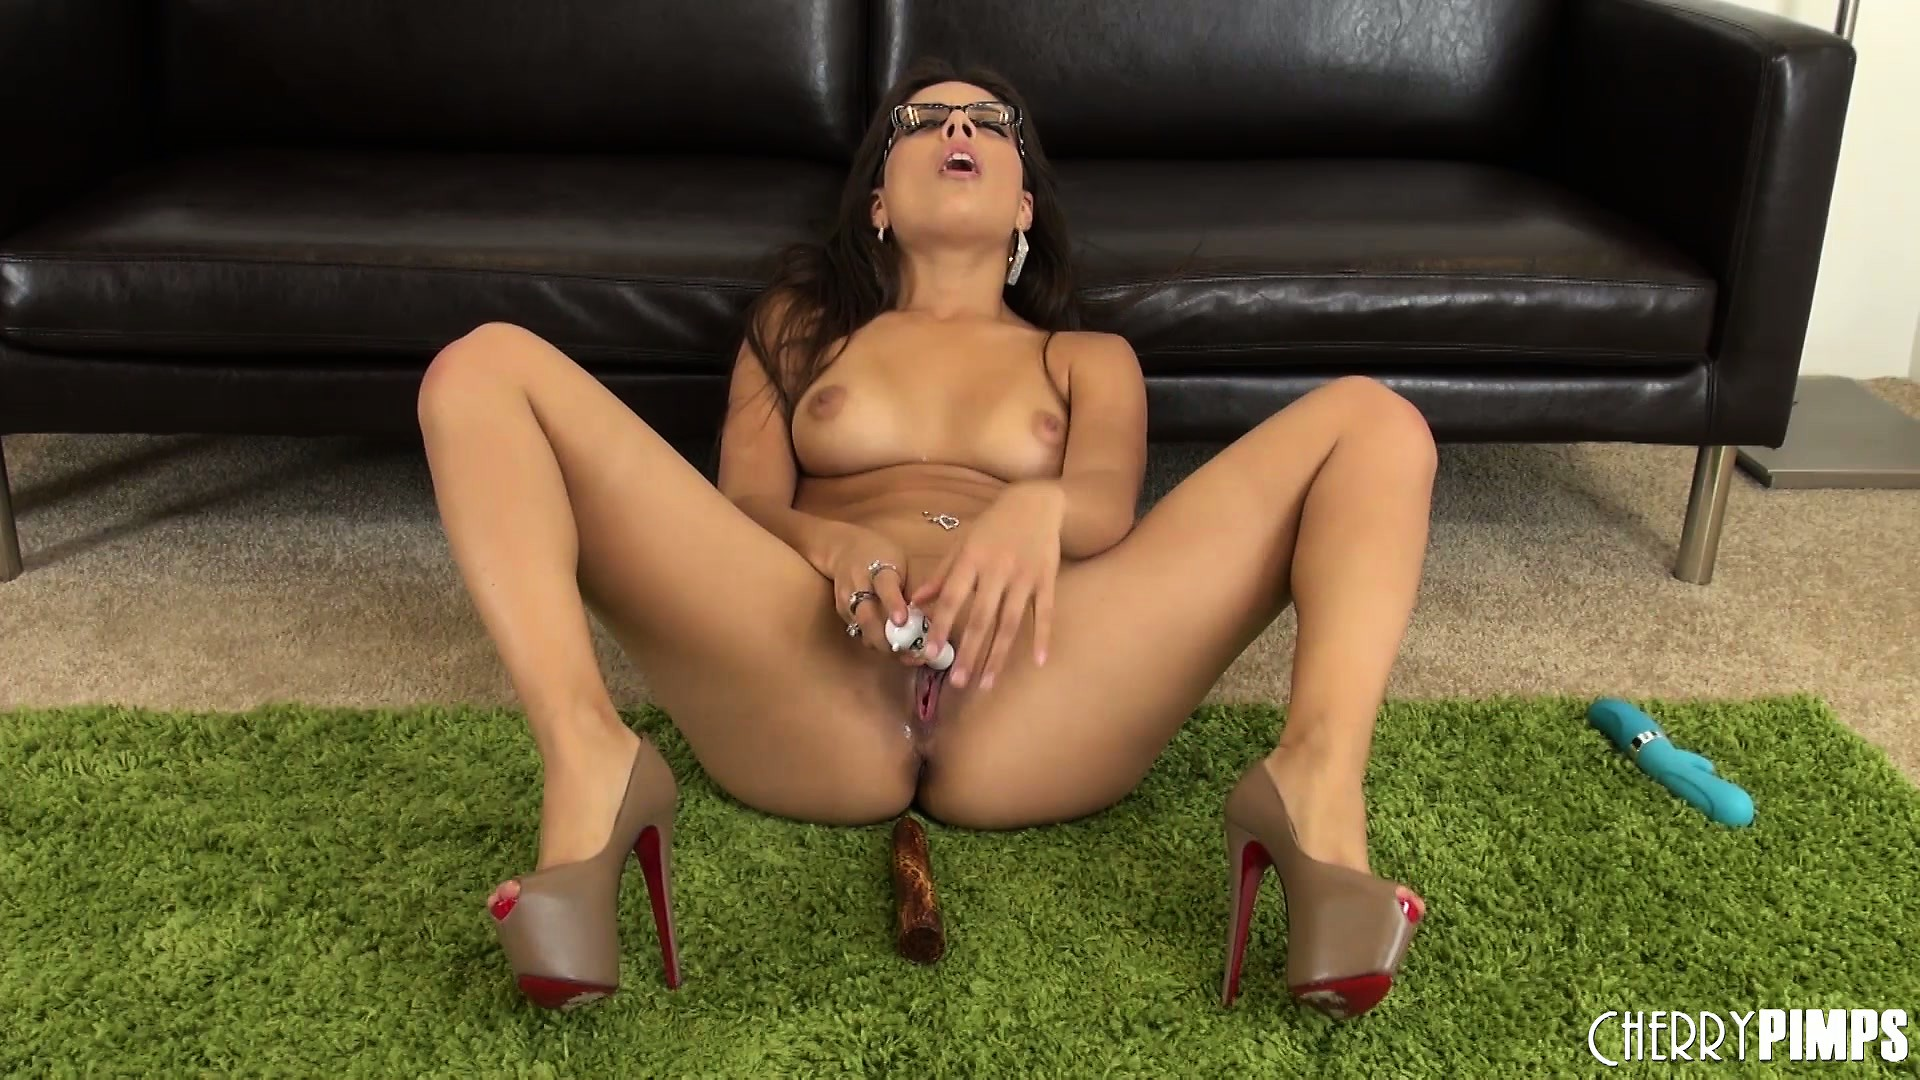 Porn Tube of Jynx Maze Has A Tight Snatch That Needs To Be Stretched By A Wild Dick